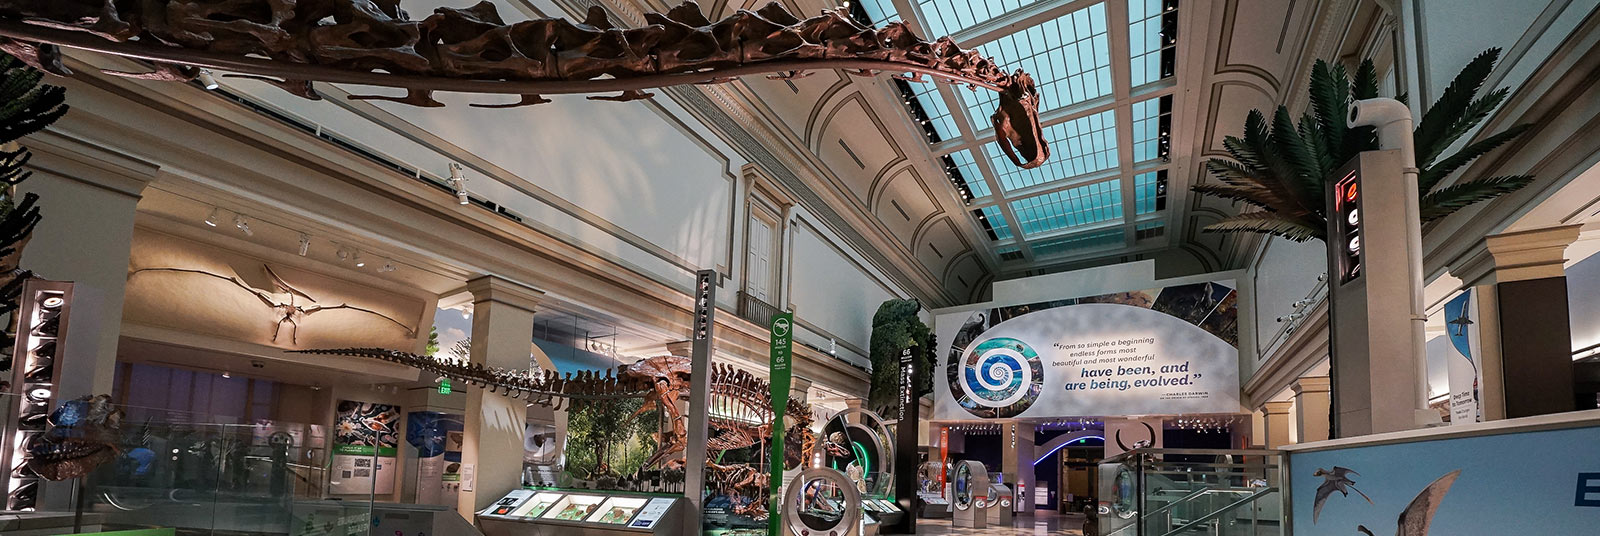 Large atrium space at the Deep Time exhibit at the Smithsonian National Museum of Natural History in Washington, DC